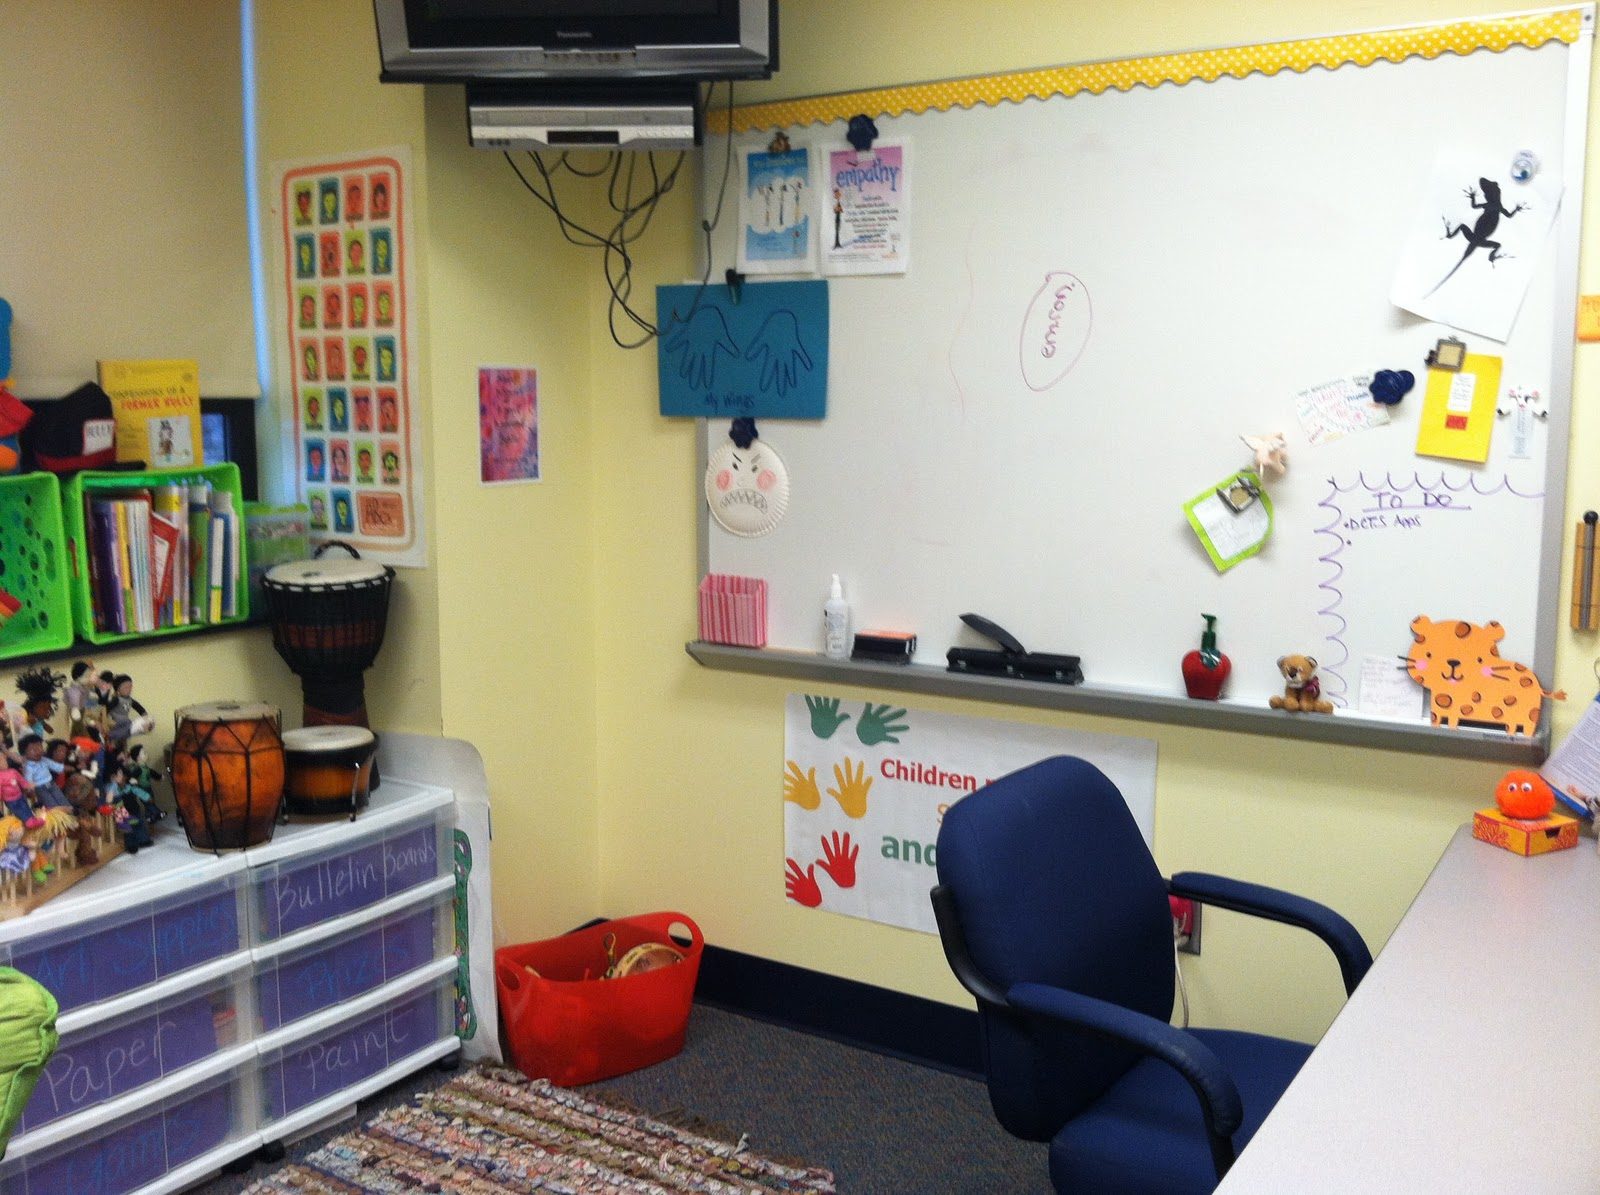 School Counselor Blog: My Current School Counseling Office \